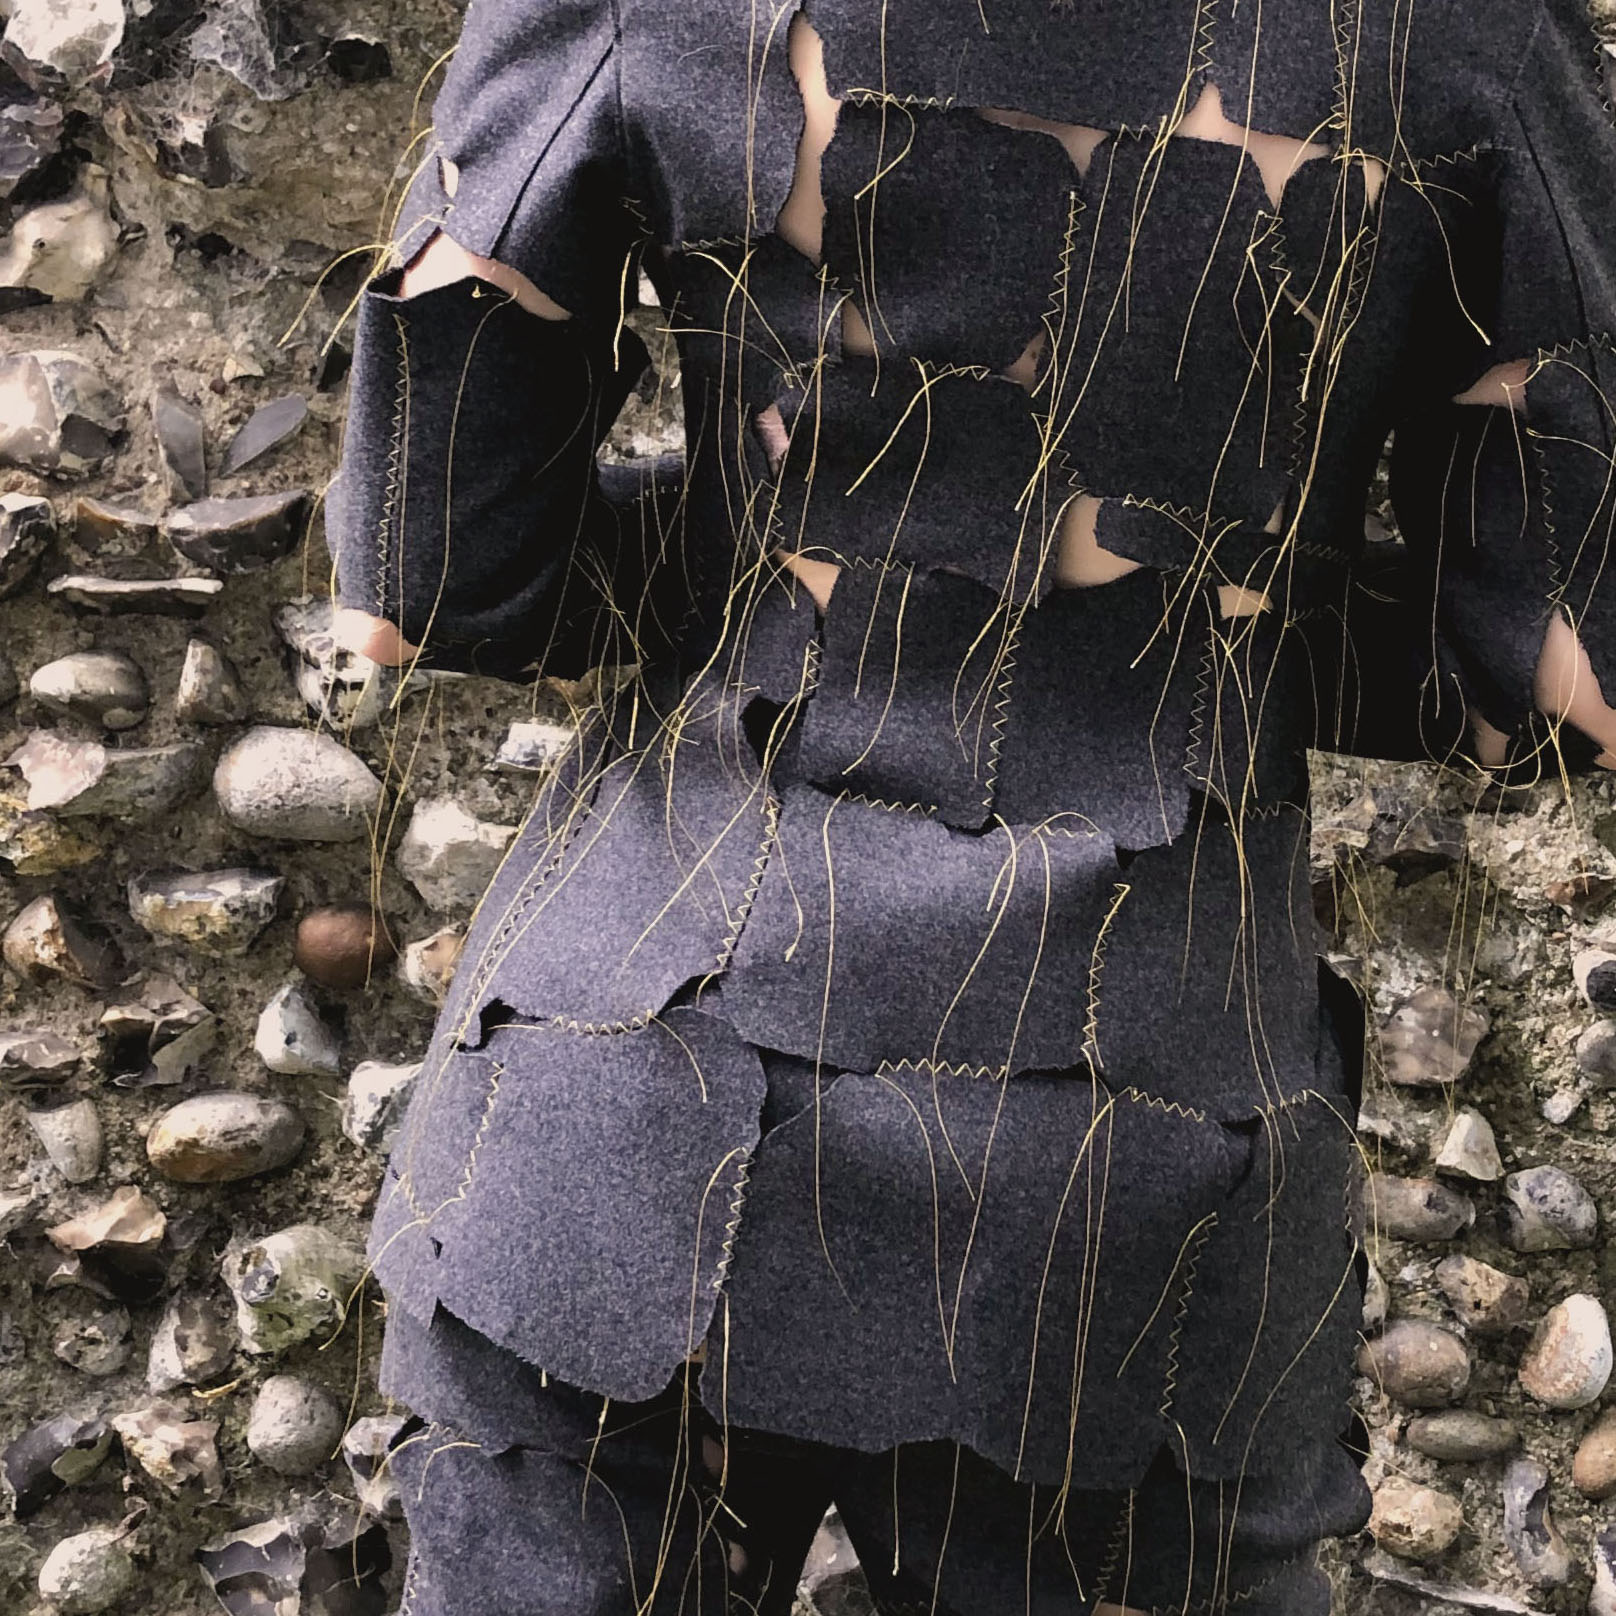 Photograph of the back view of model in suit